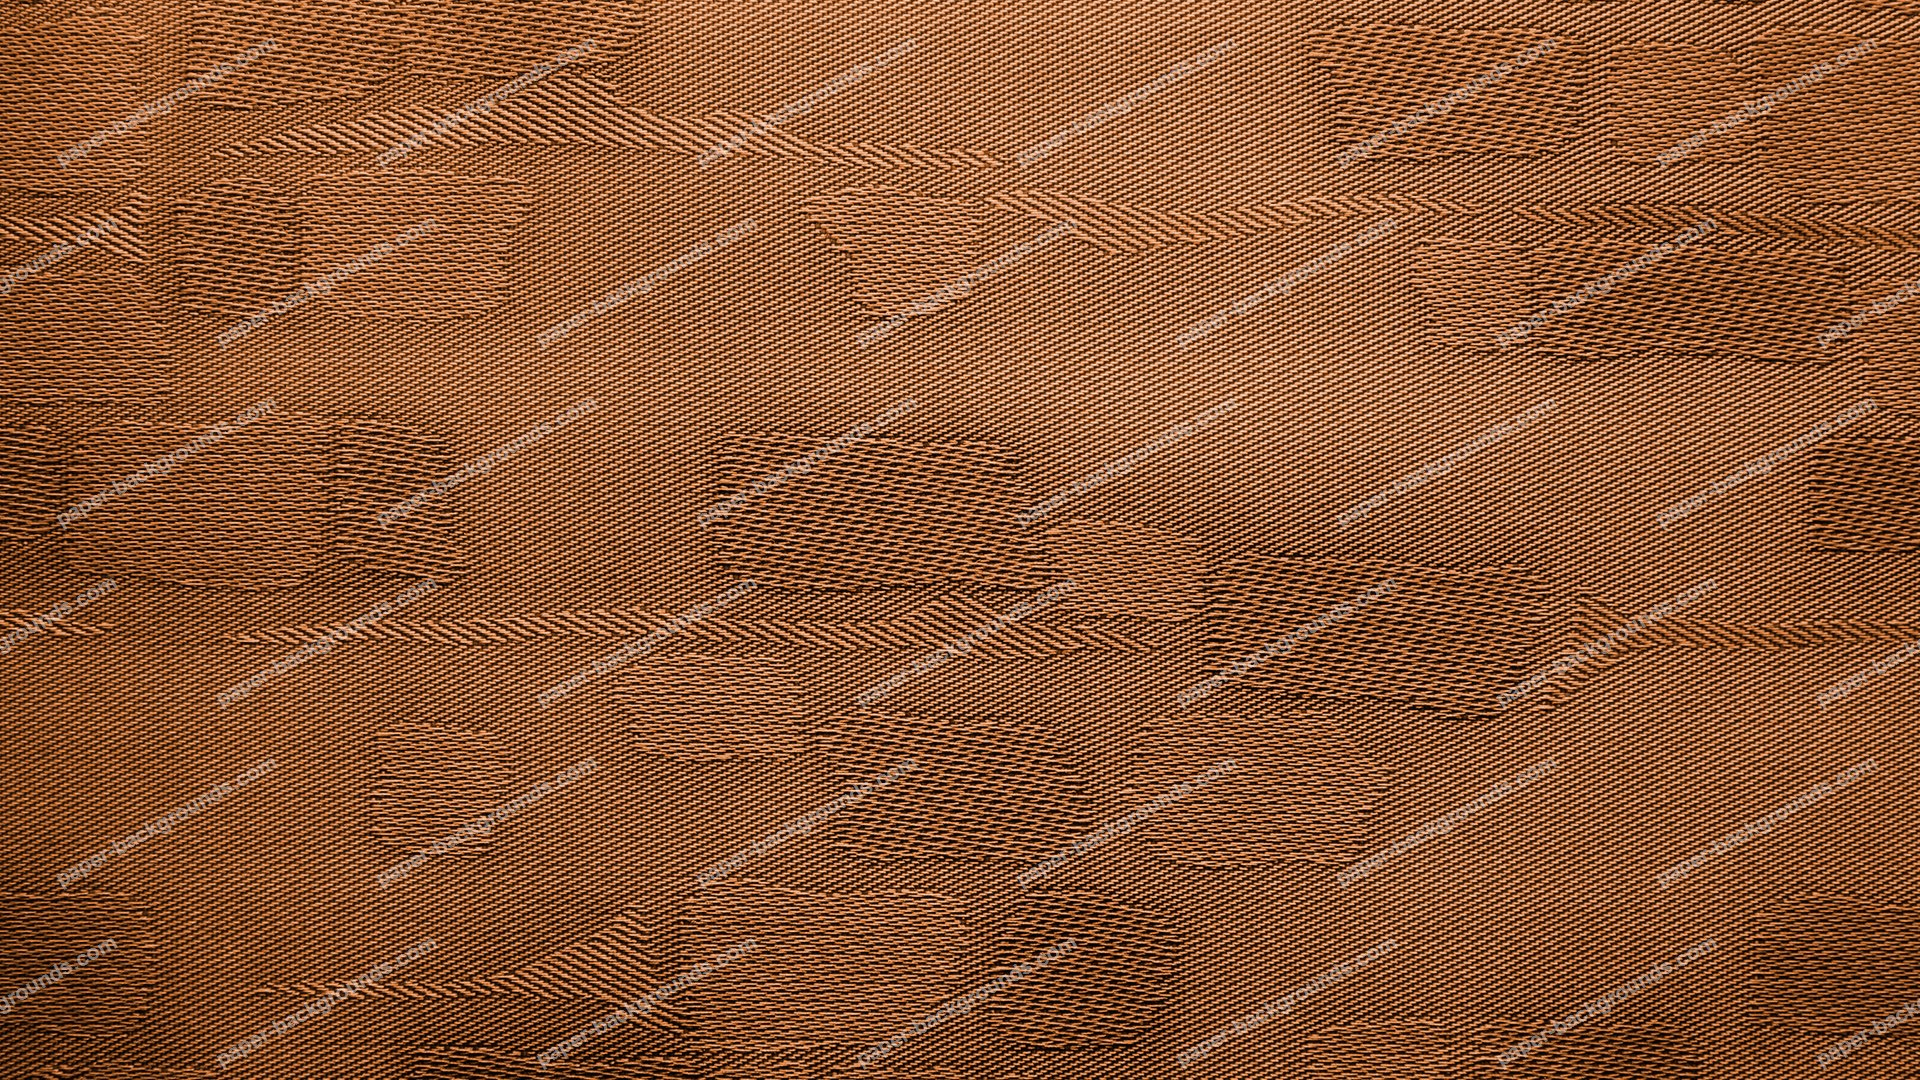 Brown Vintage Background With Patches HD 1920 x 1080p